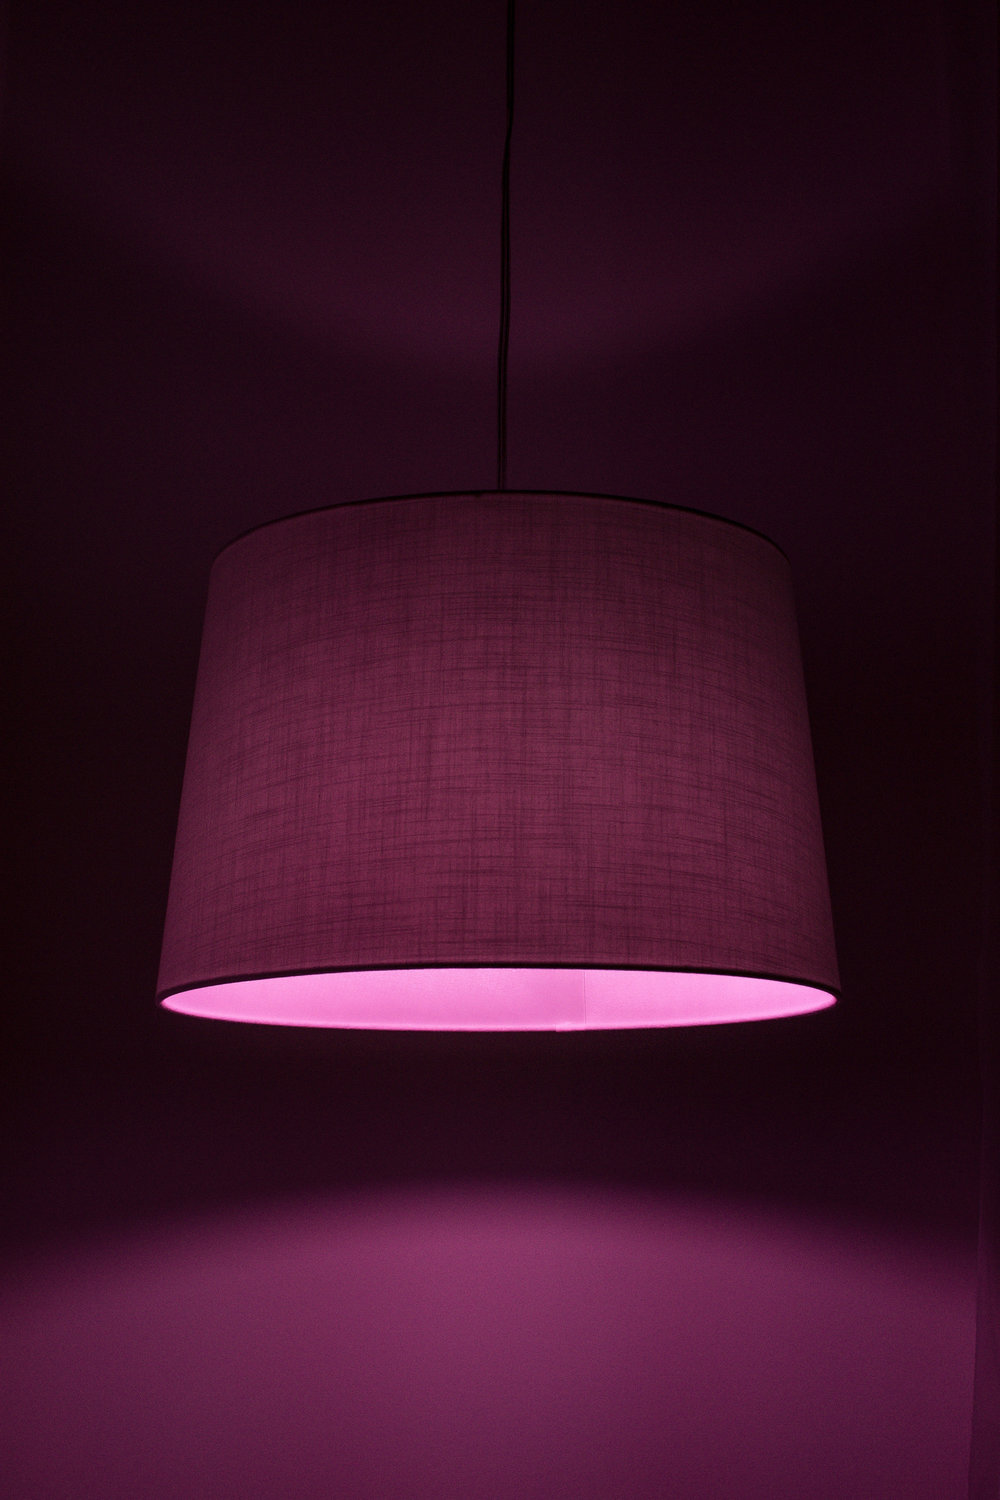 A mulberry colored fabric hanging ceiling lamp illuminates a room of the same color